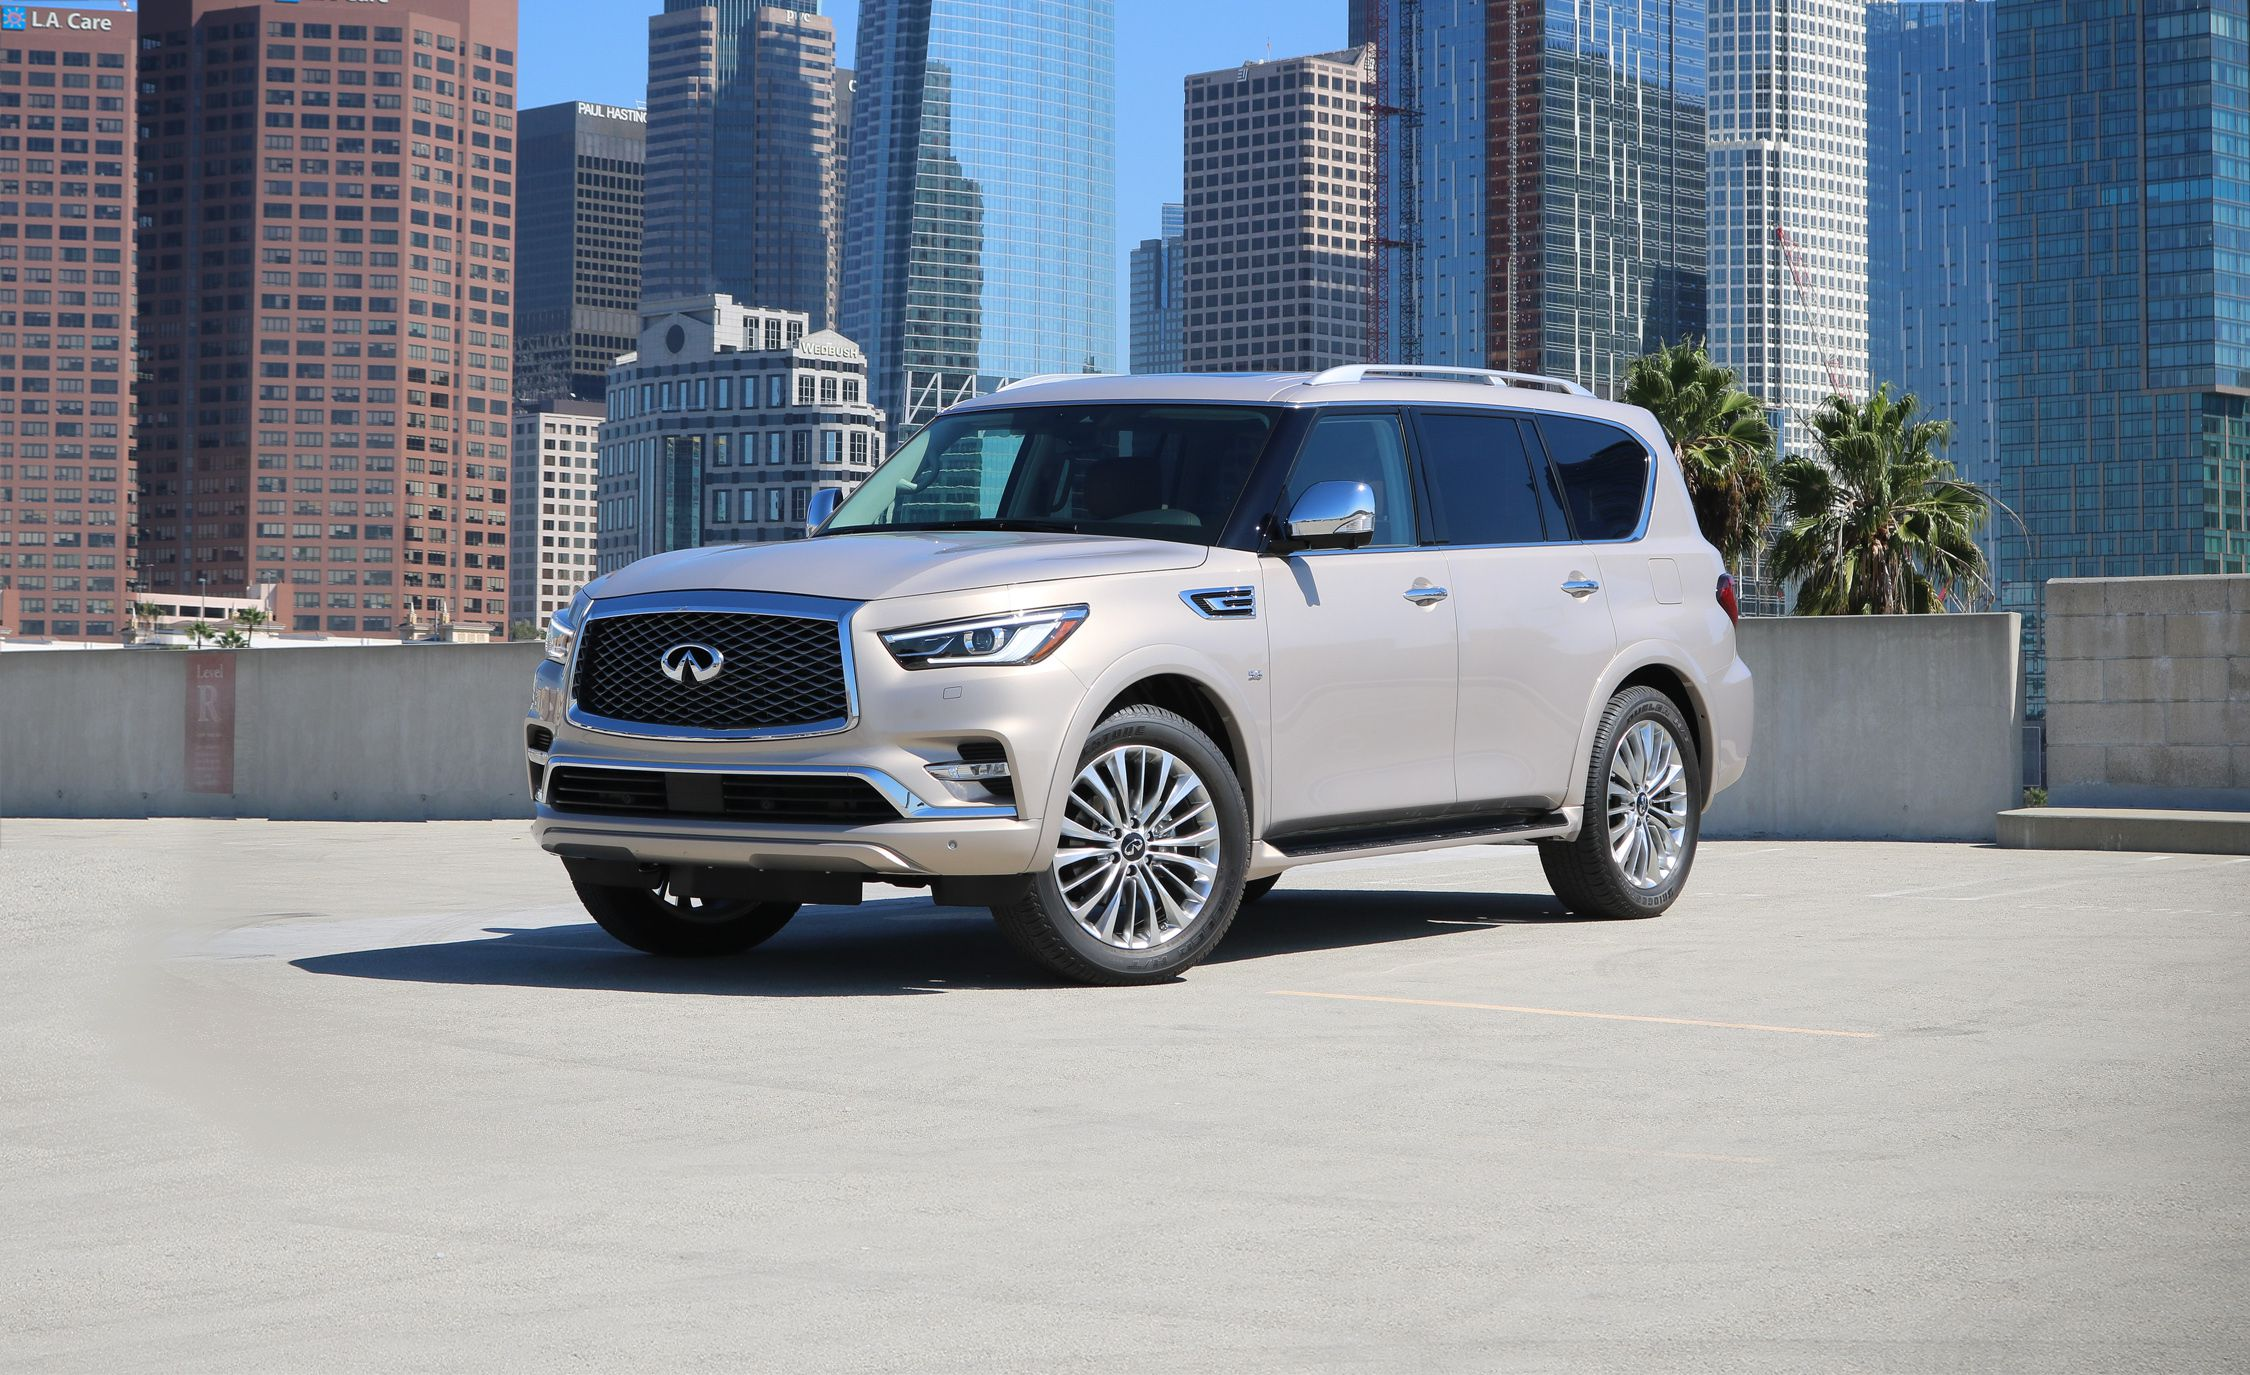 Looking for Cheap Cars for Sale Fresh 2018 Infiniti Qx80 Revealed Finally Looks the Brute Ute Part